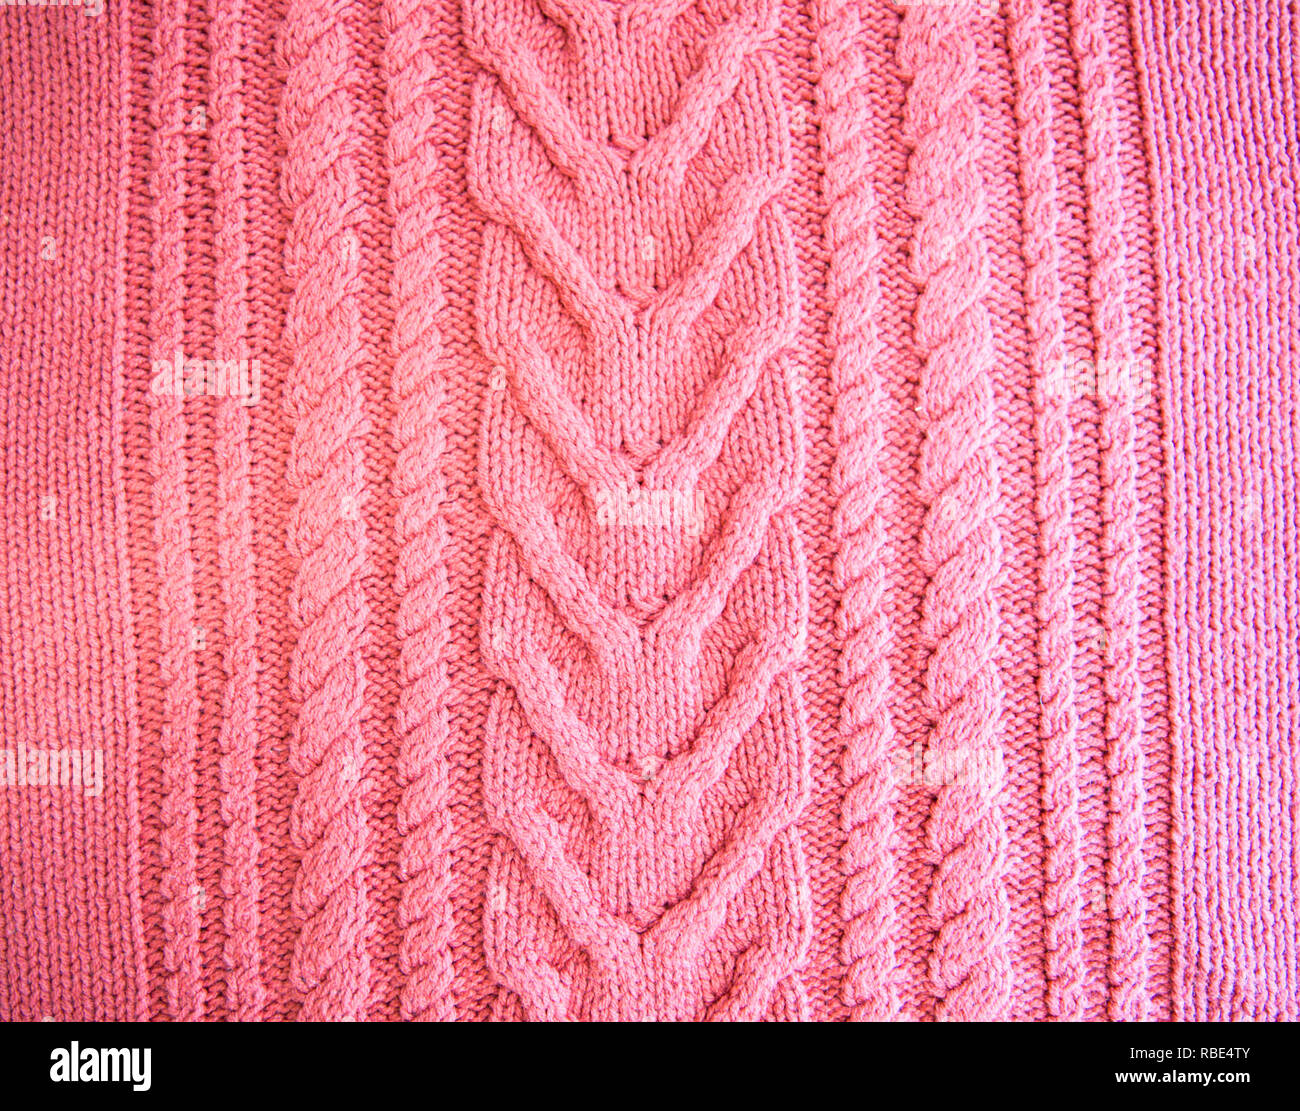 f542ae5b09e Pink fuchsia magenta Blush Knitted pattern wool sweater texture close up.  Handmade red knitting wool texture background